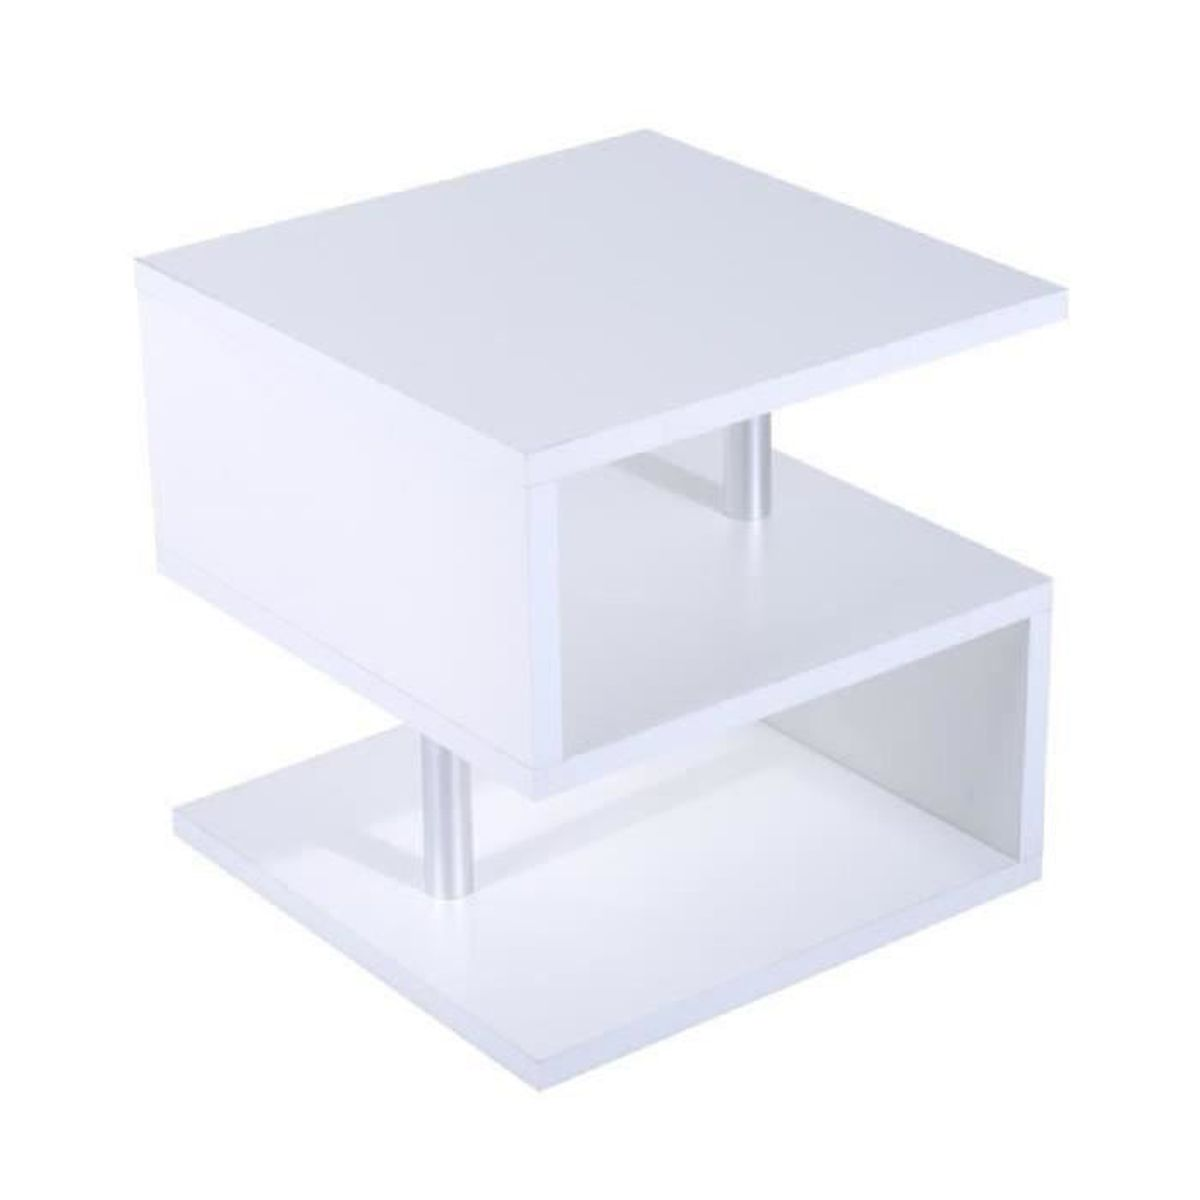 Table basse carre laquee blanc achat vente table basse - Table basse salon moderne ...